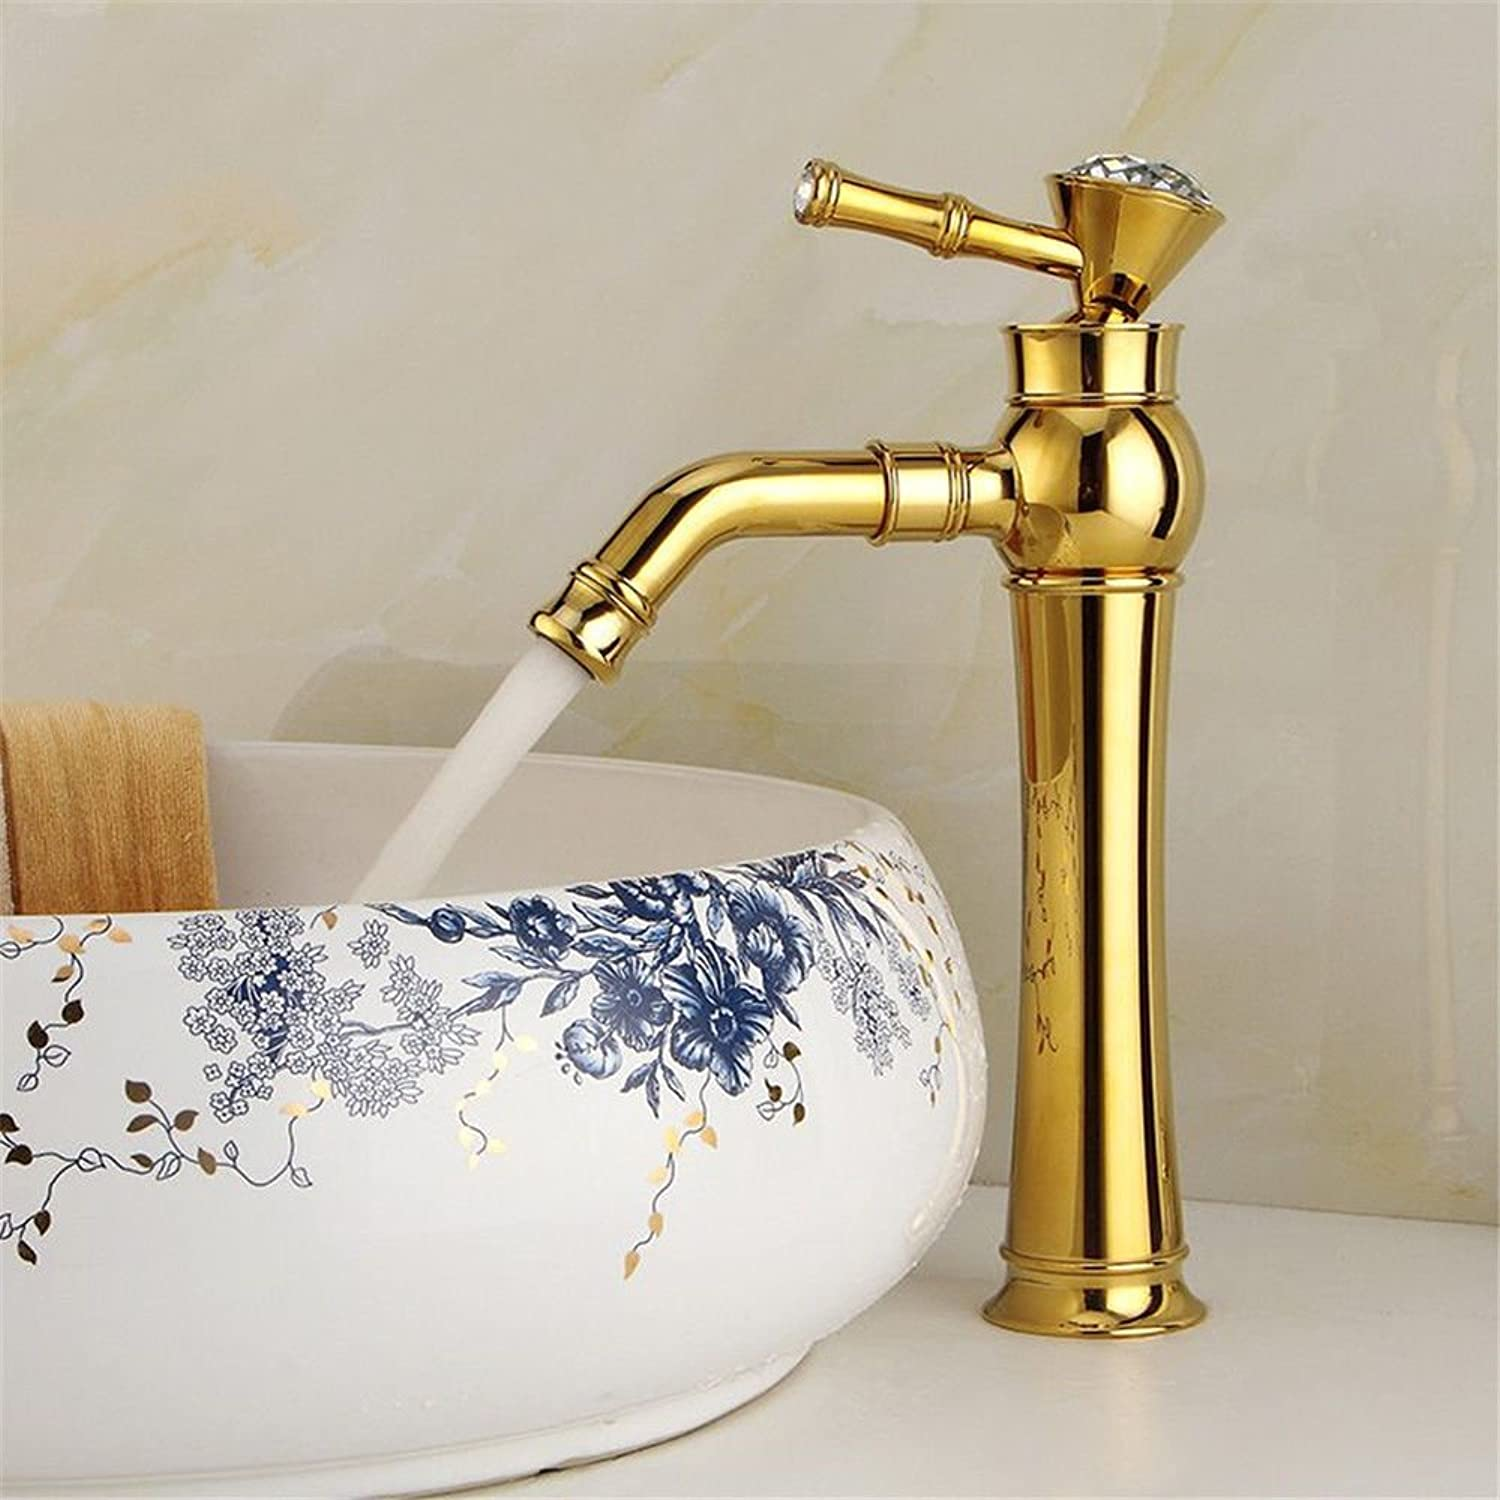 Gyps Faucet Basin Mixer Tap Waterfall Faucet Antique Bathroom Mixer Bar Mixer Shower Set Tap antique bathroom faucet Basin-wide antique copper cold water on the pots of gold with diamond bathroom sink